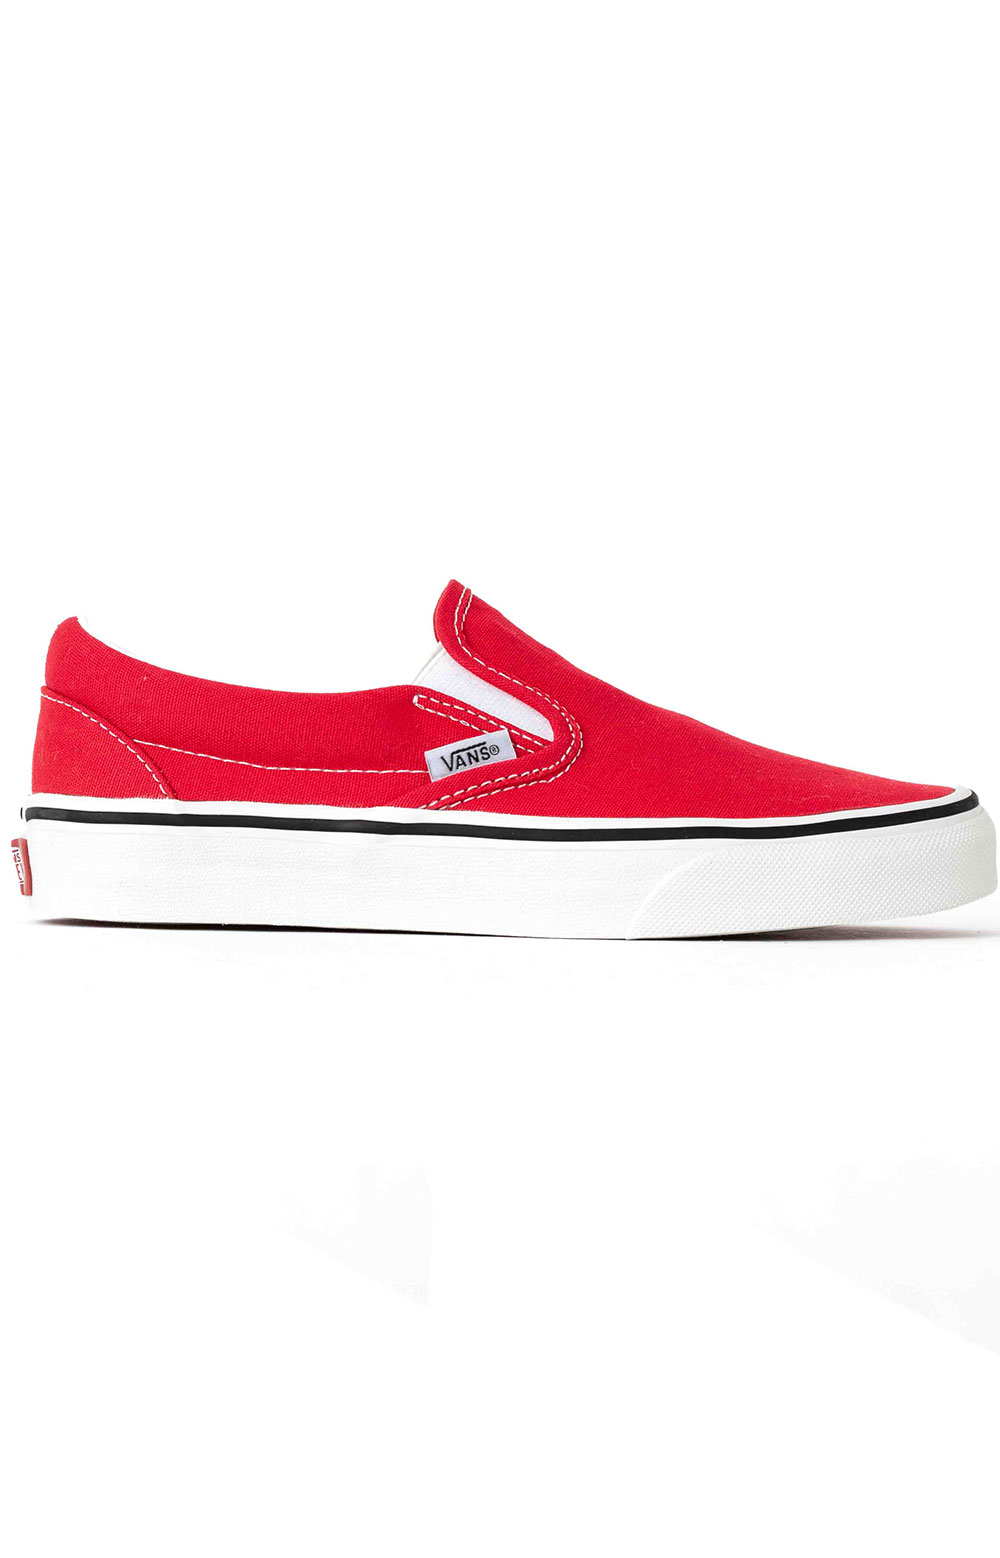 (BV3JV6) Classic Slip-On Shoe - Racing Red